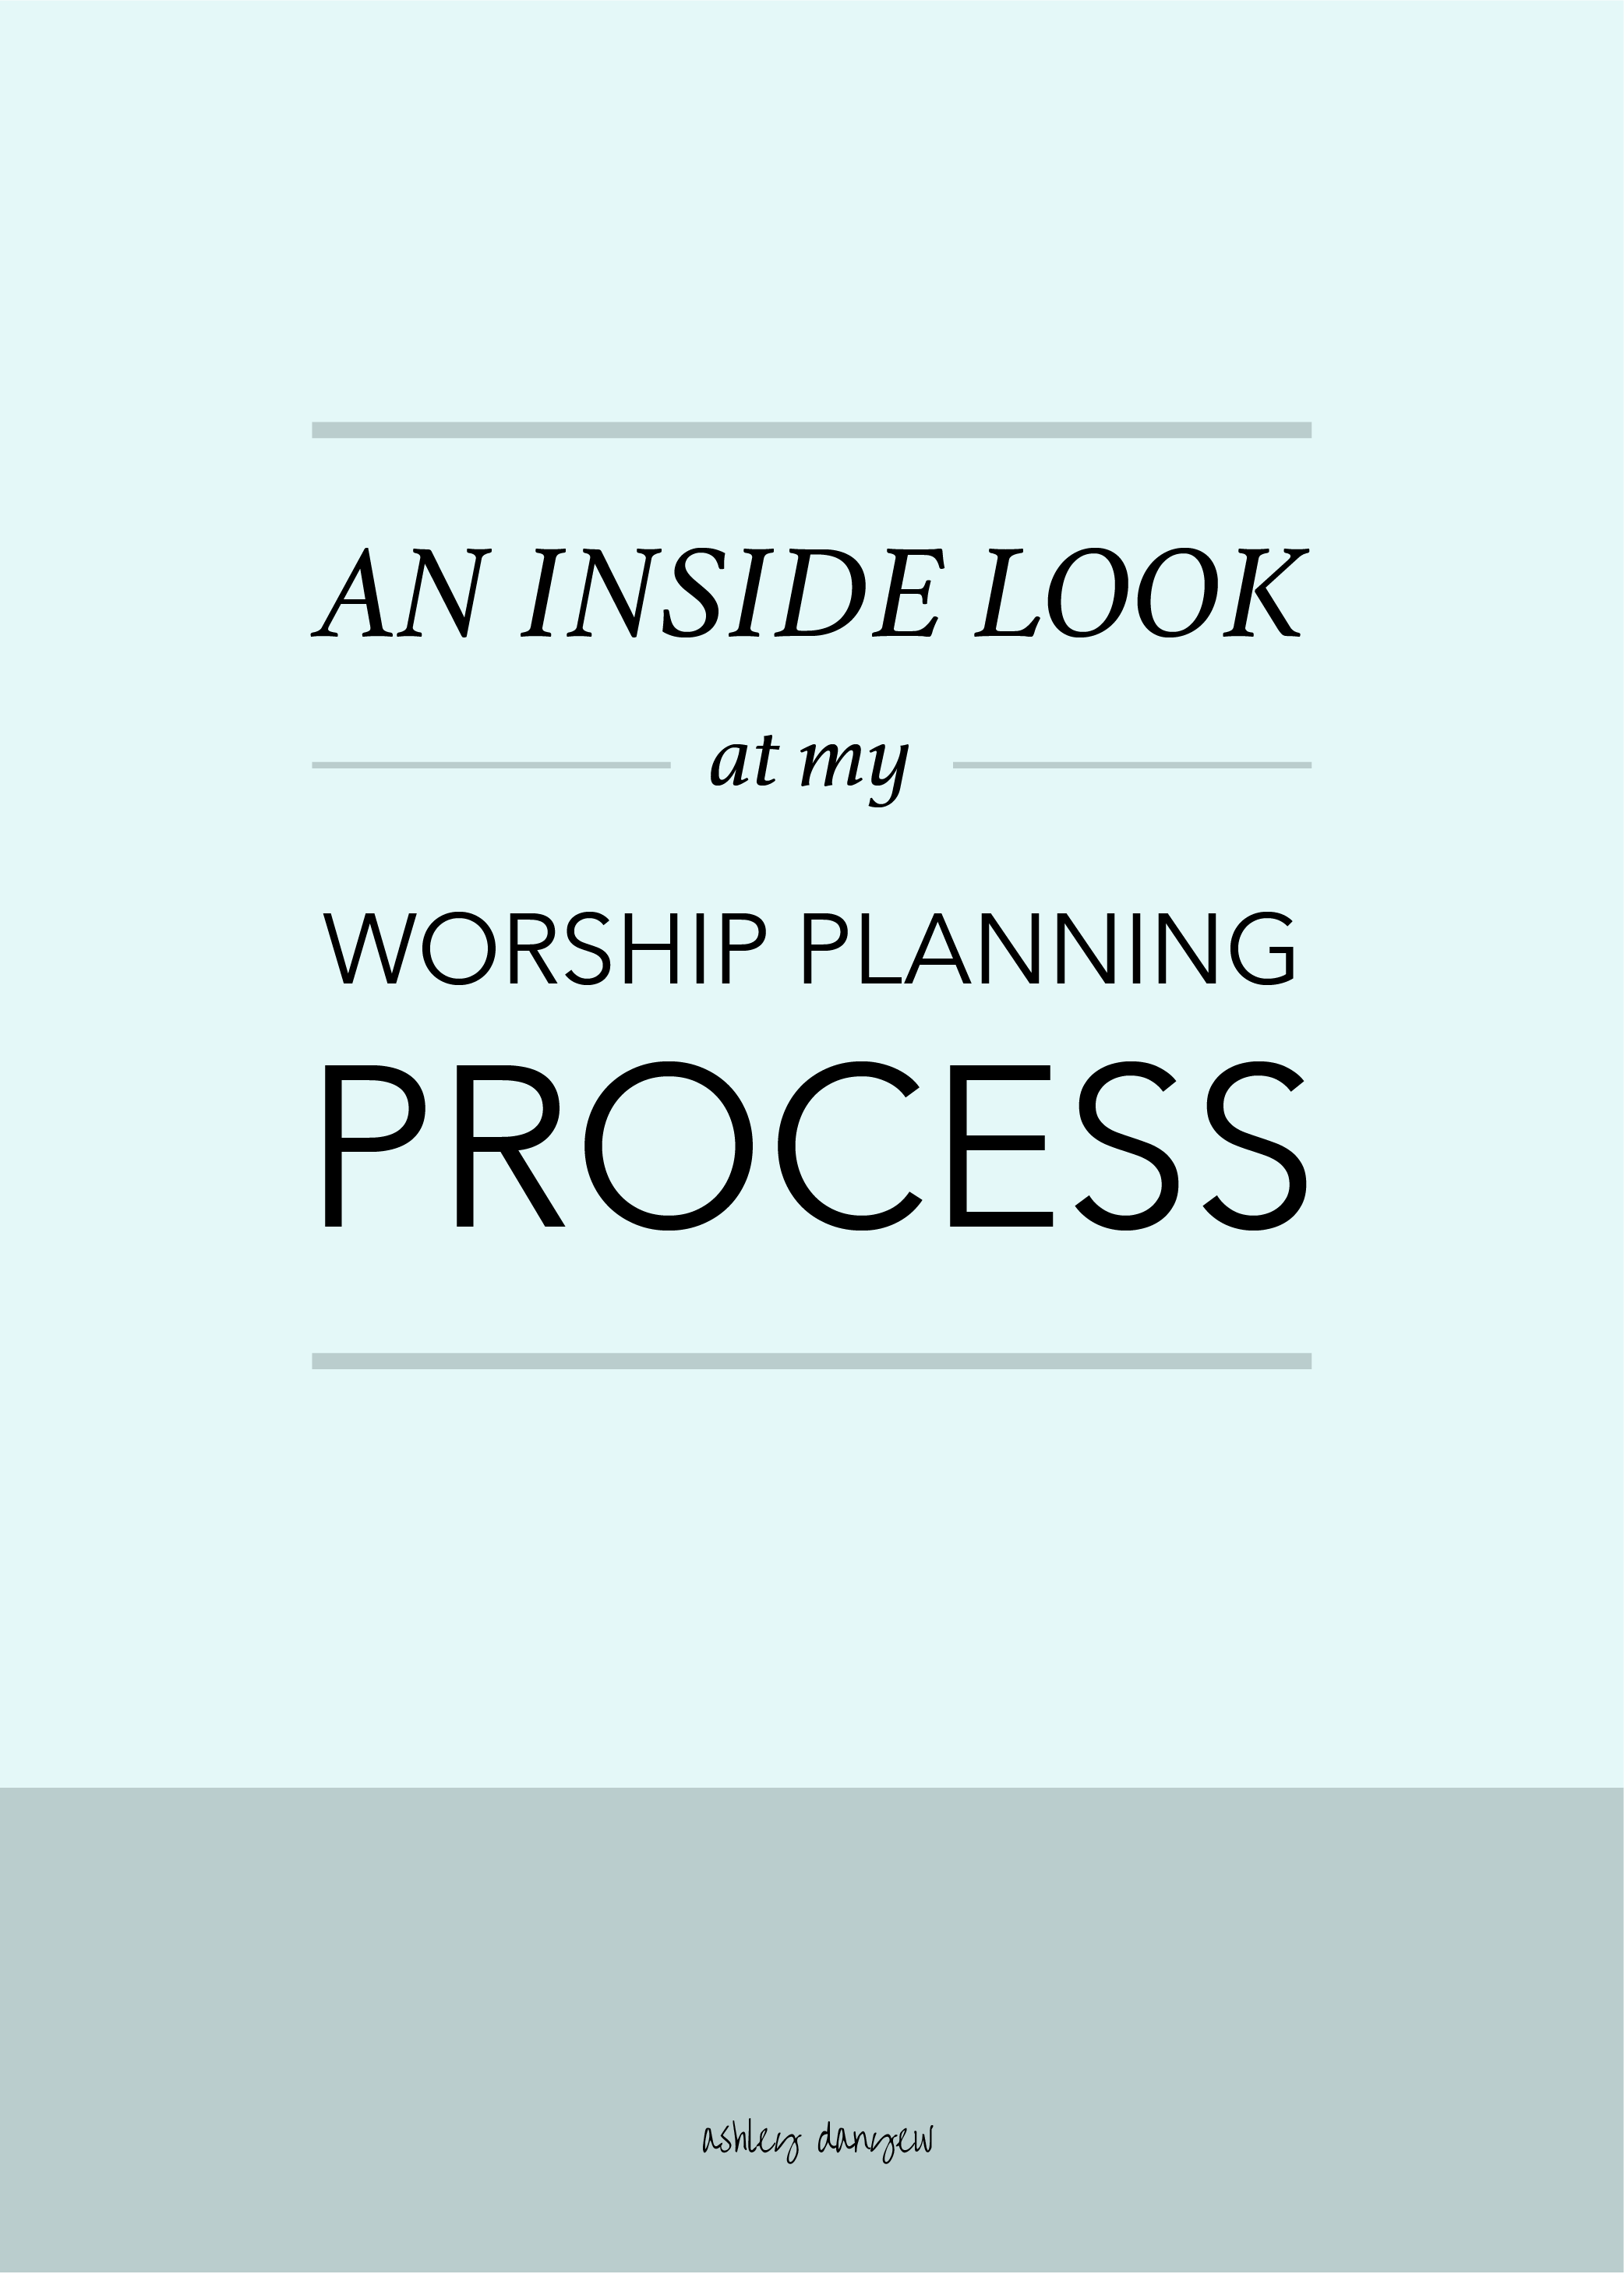 Copy of An Inside Look at My Worship Planning Process